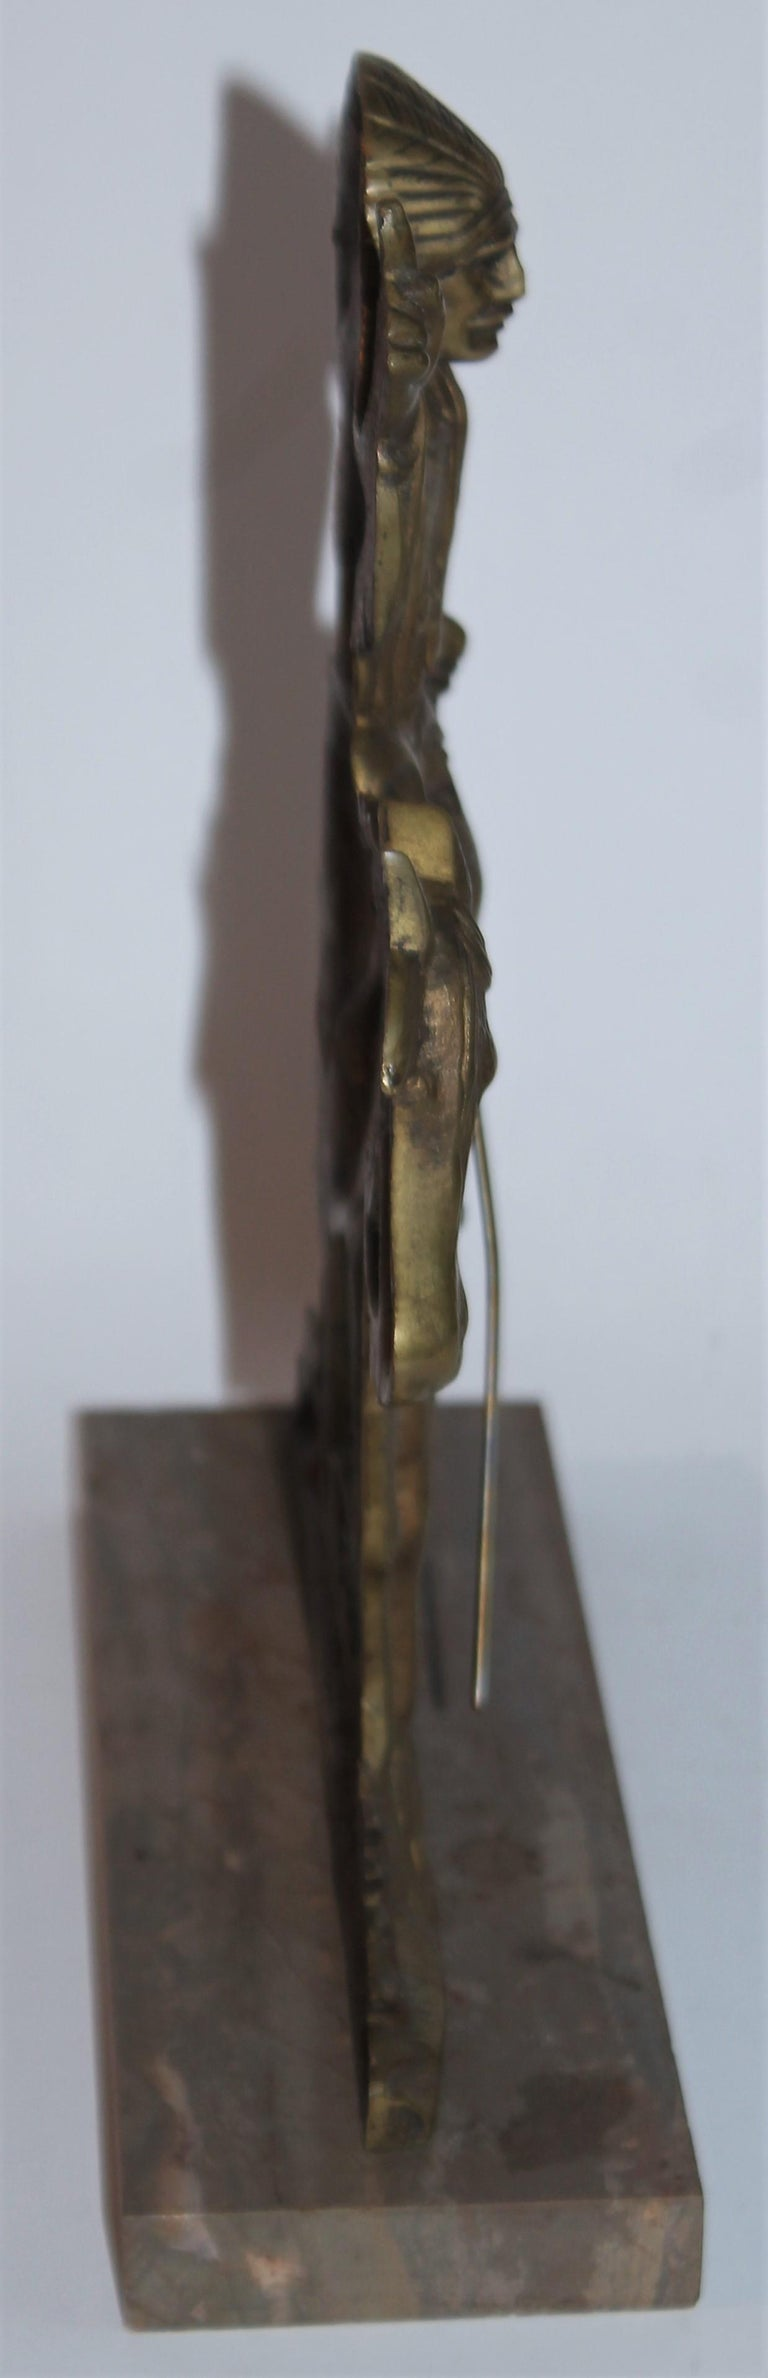 American Early 20thc Bronze Indian Sculpture on Marble Base